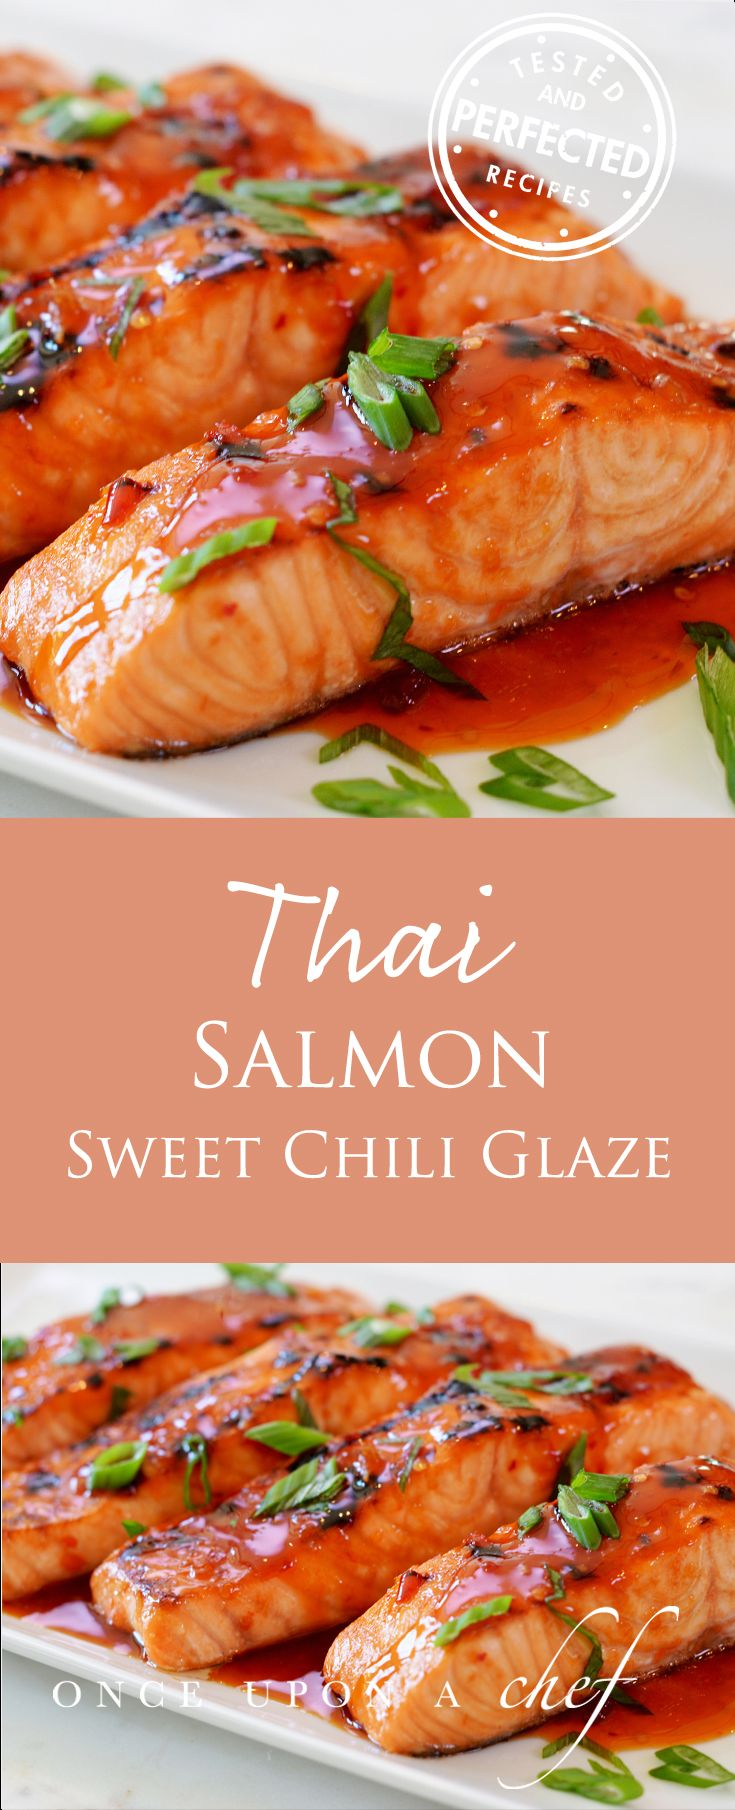 Photo of Broiled Salmon with Thai Sweet Chili Glaze – Once Upon a Chef